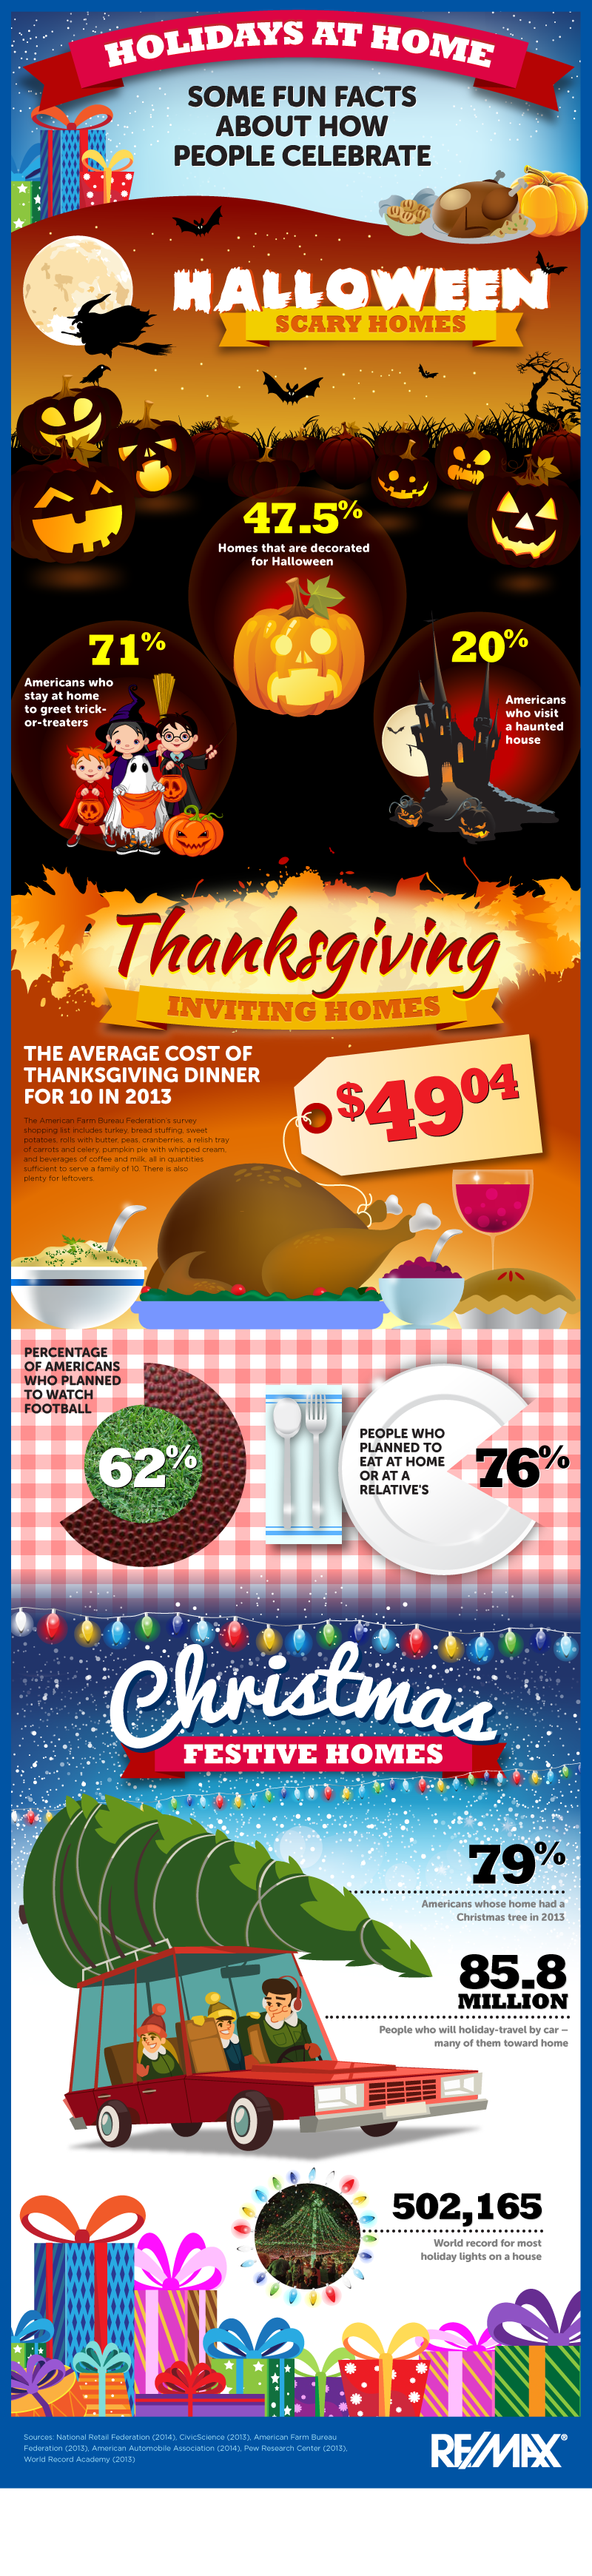 Fun Facts About The The Thanks Giving Holiday in America